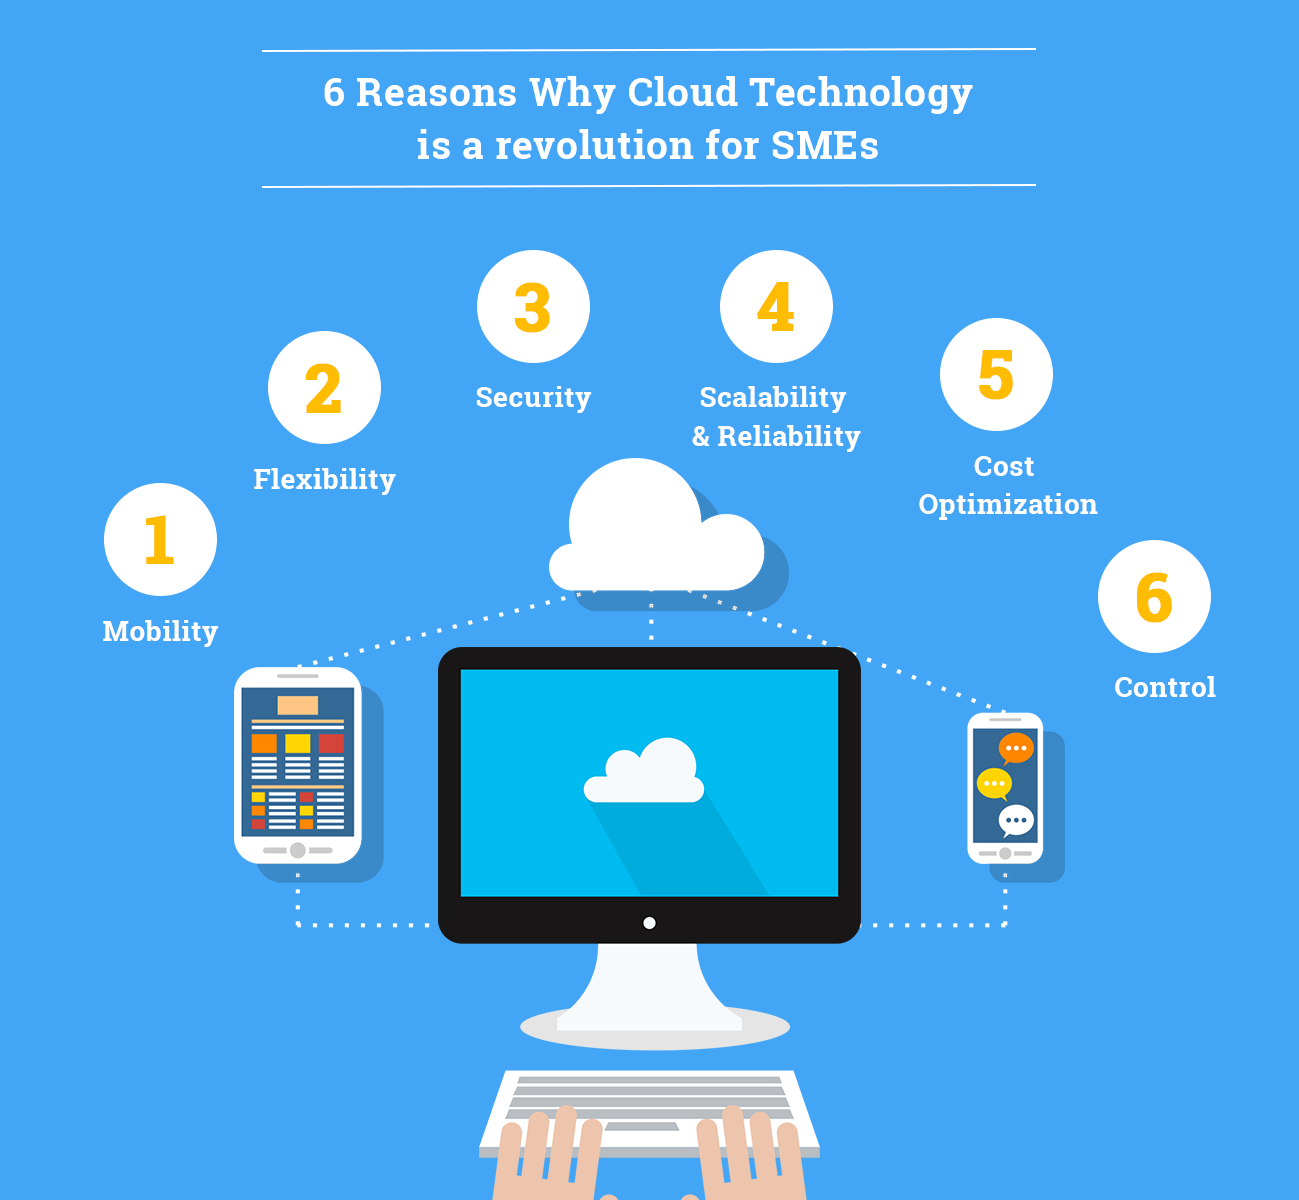 6-reasons-why-cloud-technology-is-a-revolution-for-smes